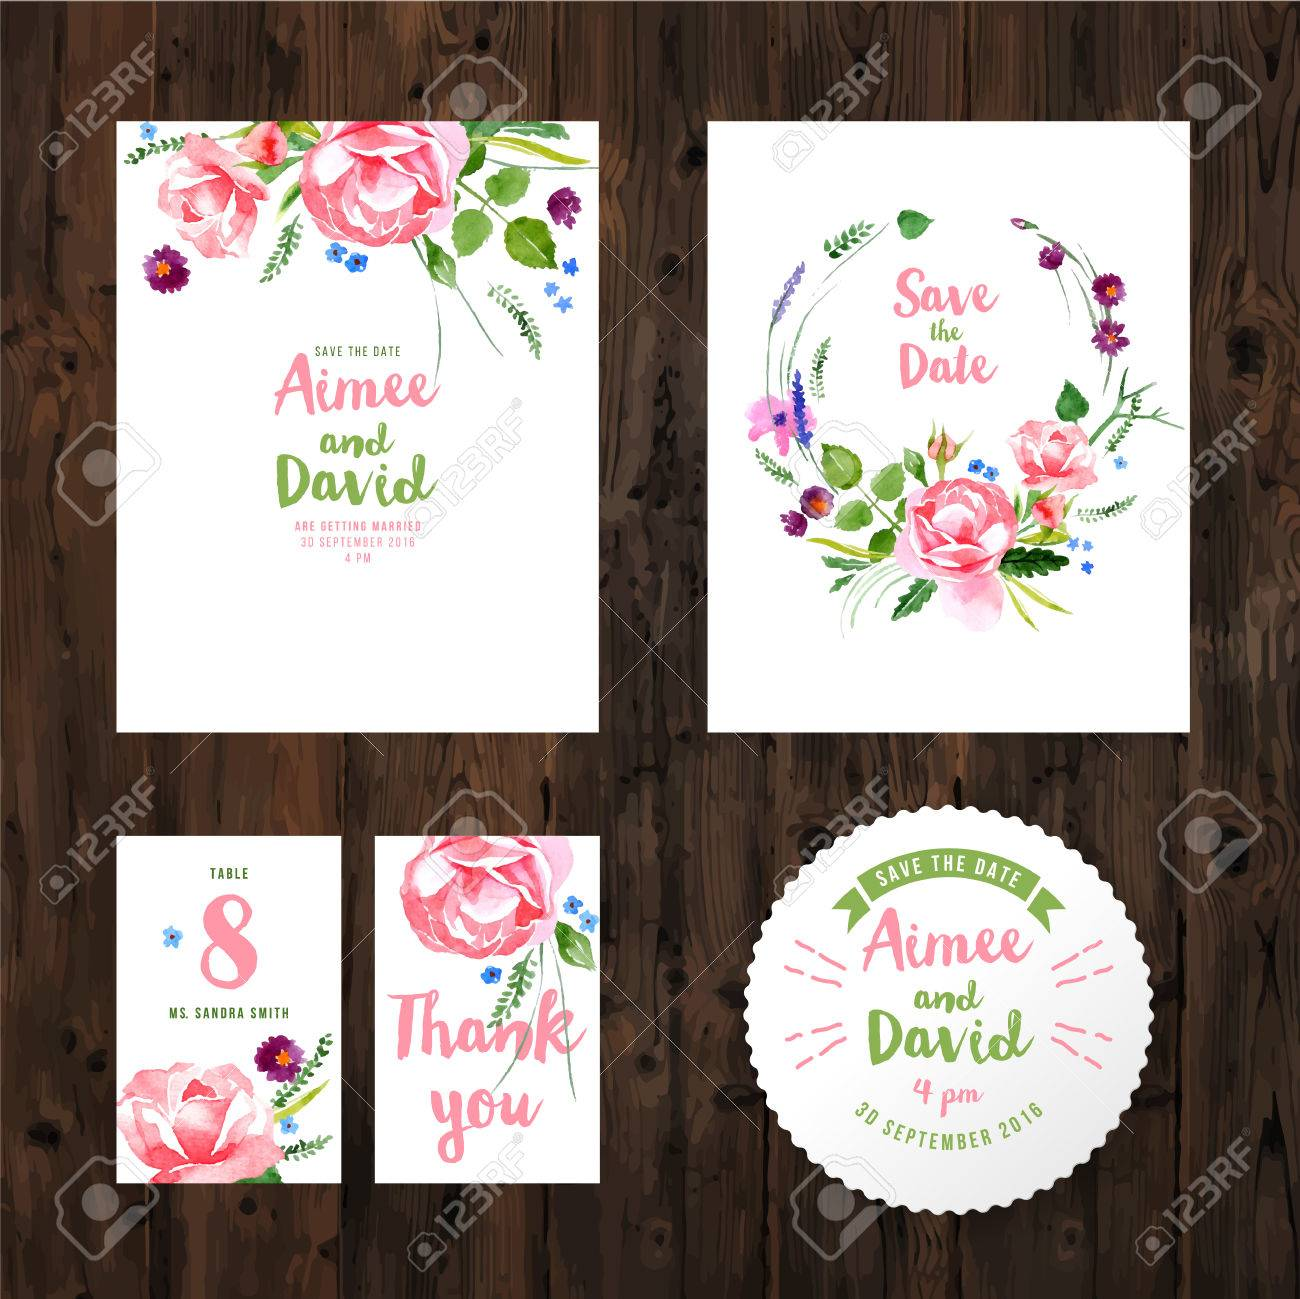 Wedding cards with watercolor flowers on wooden background - 42038420